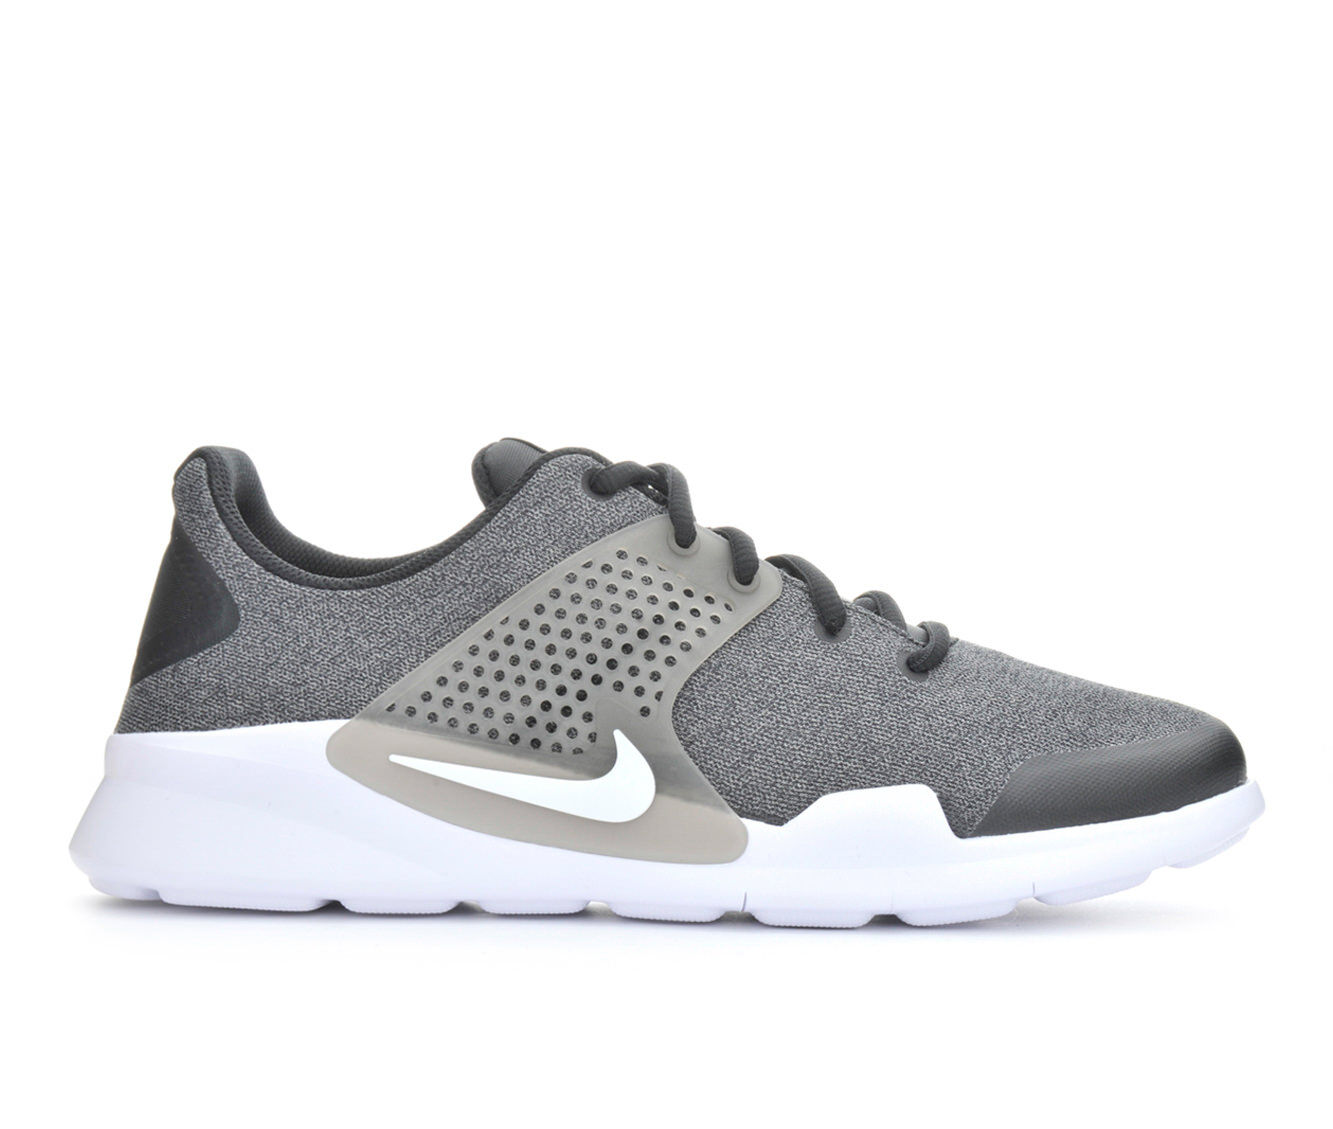 4d4960d7bf3a7 ... closeout mens nike arrowz sneakers shoe carnival ed040 063bf